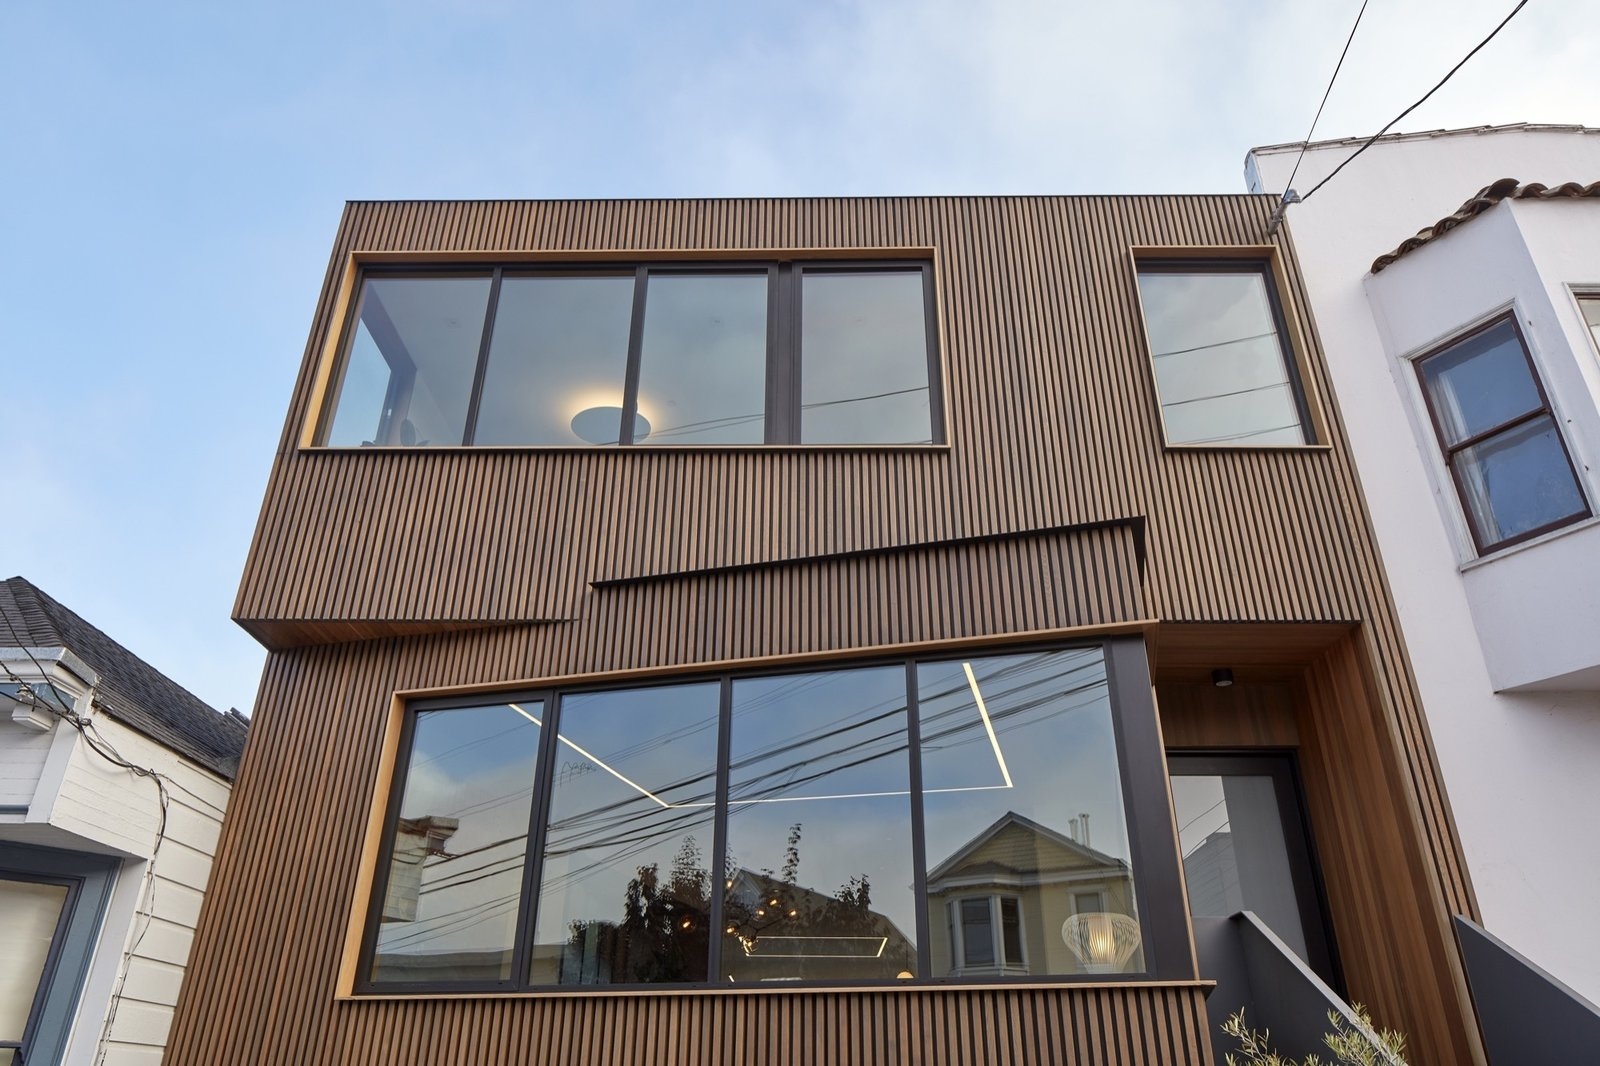 Windows, Casement Window Type, Picture Window Type, and Metal View looking up at facade from sidewalk.  Noe Valley House by IwamotoScott Architecture